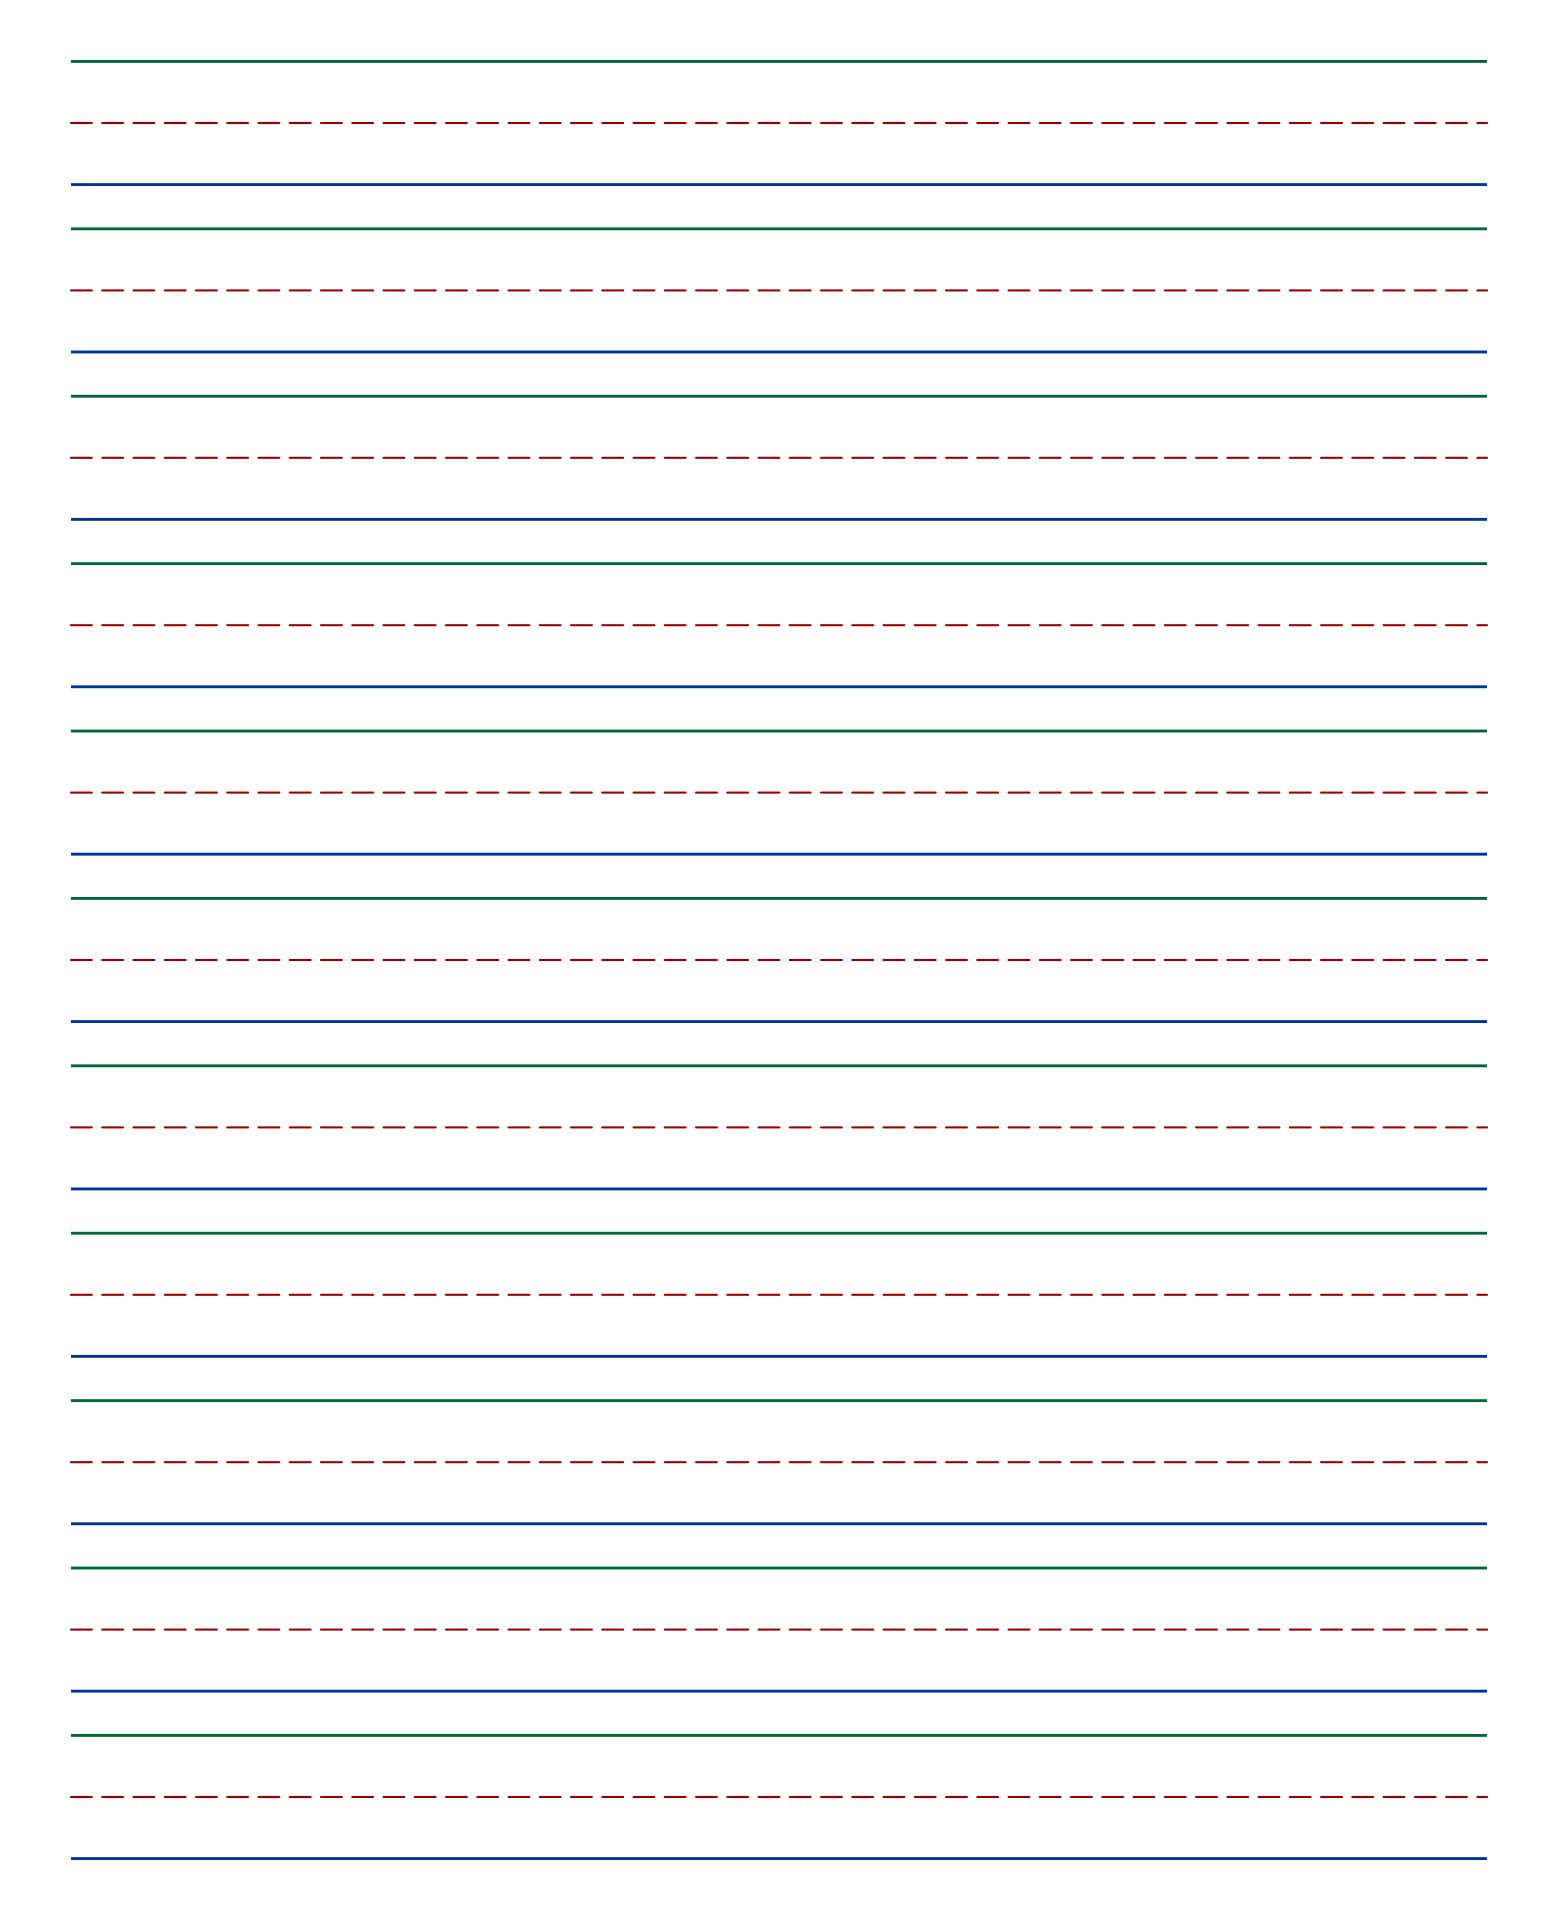 handwriting paper printables Math worksheets for handwriting paper math worksheets handwriting paper handwriting paper handwriting paper: handwriting paper printable pdf files for basic handing writing pages in.